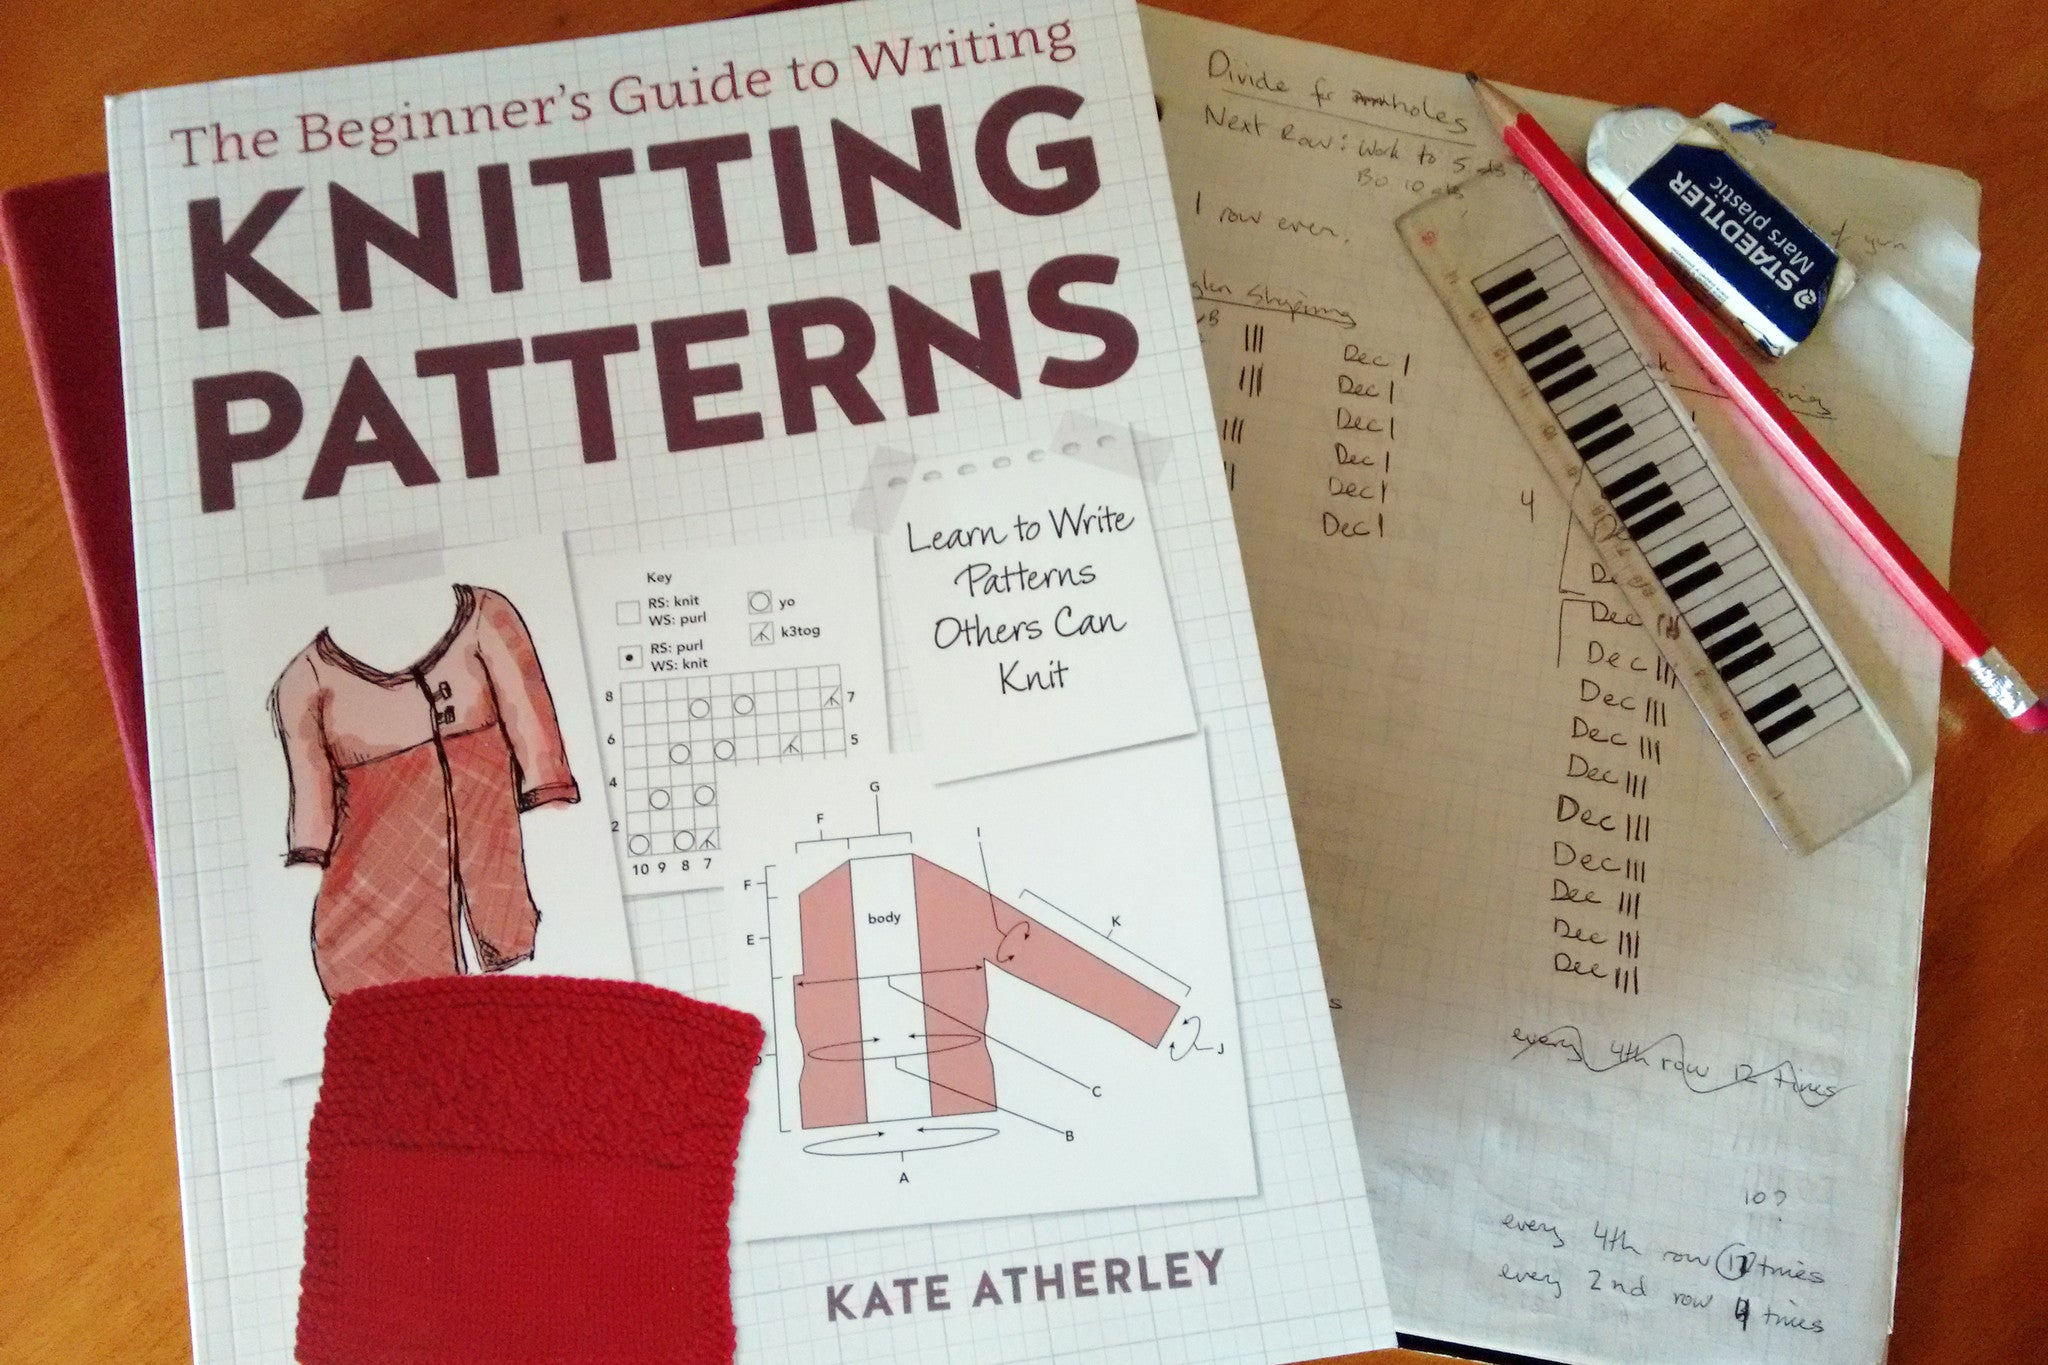 Book review: The Beginner's Guide to Writing Knitting Patterns